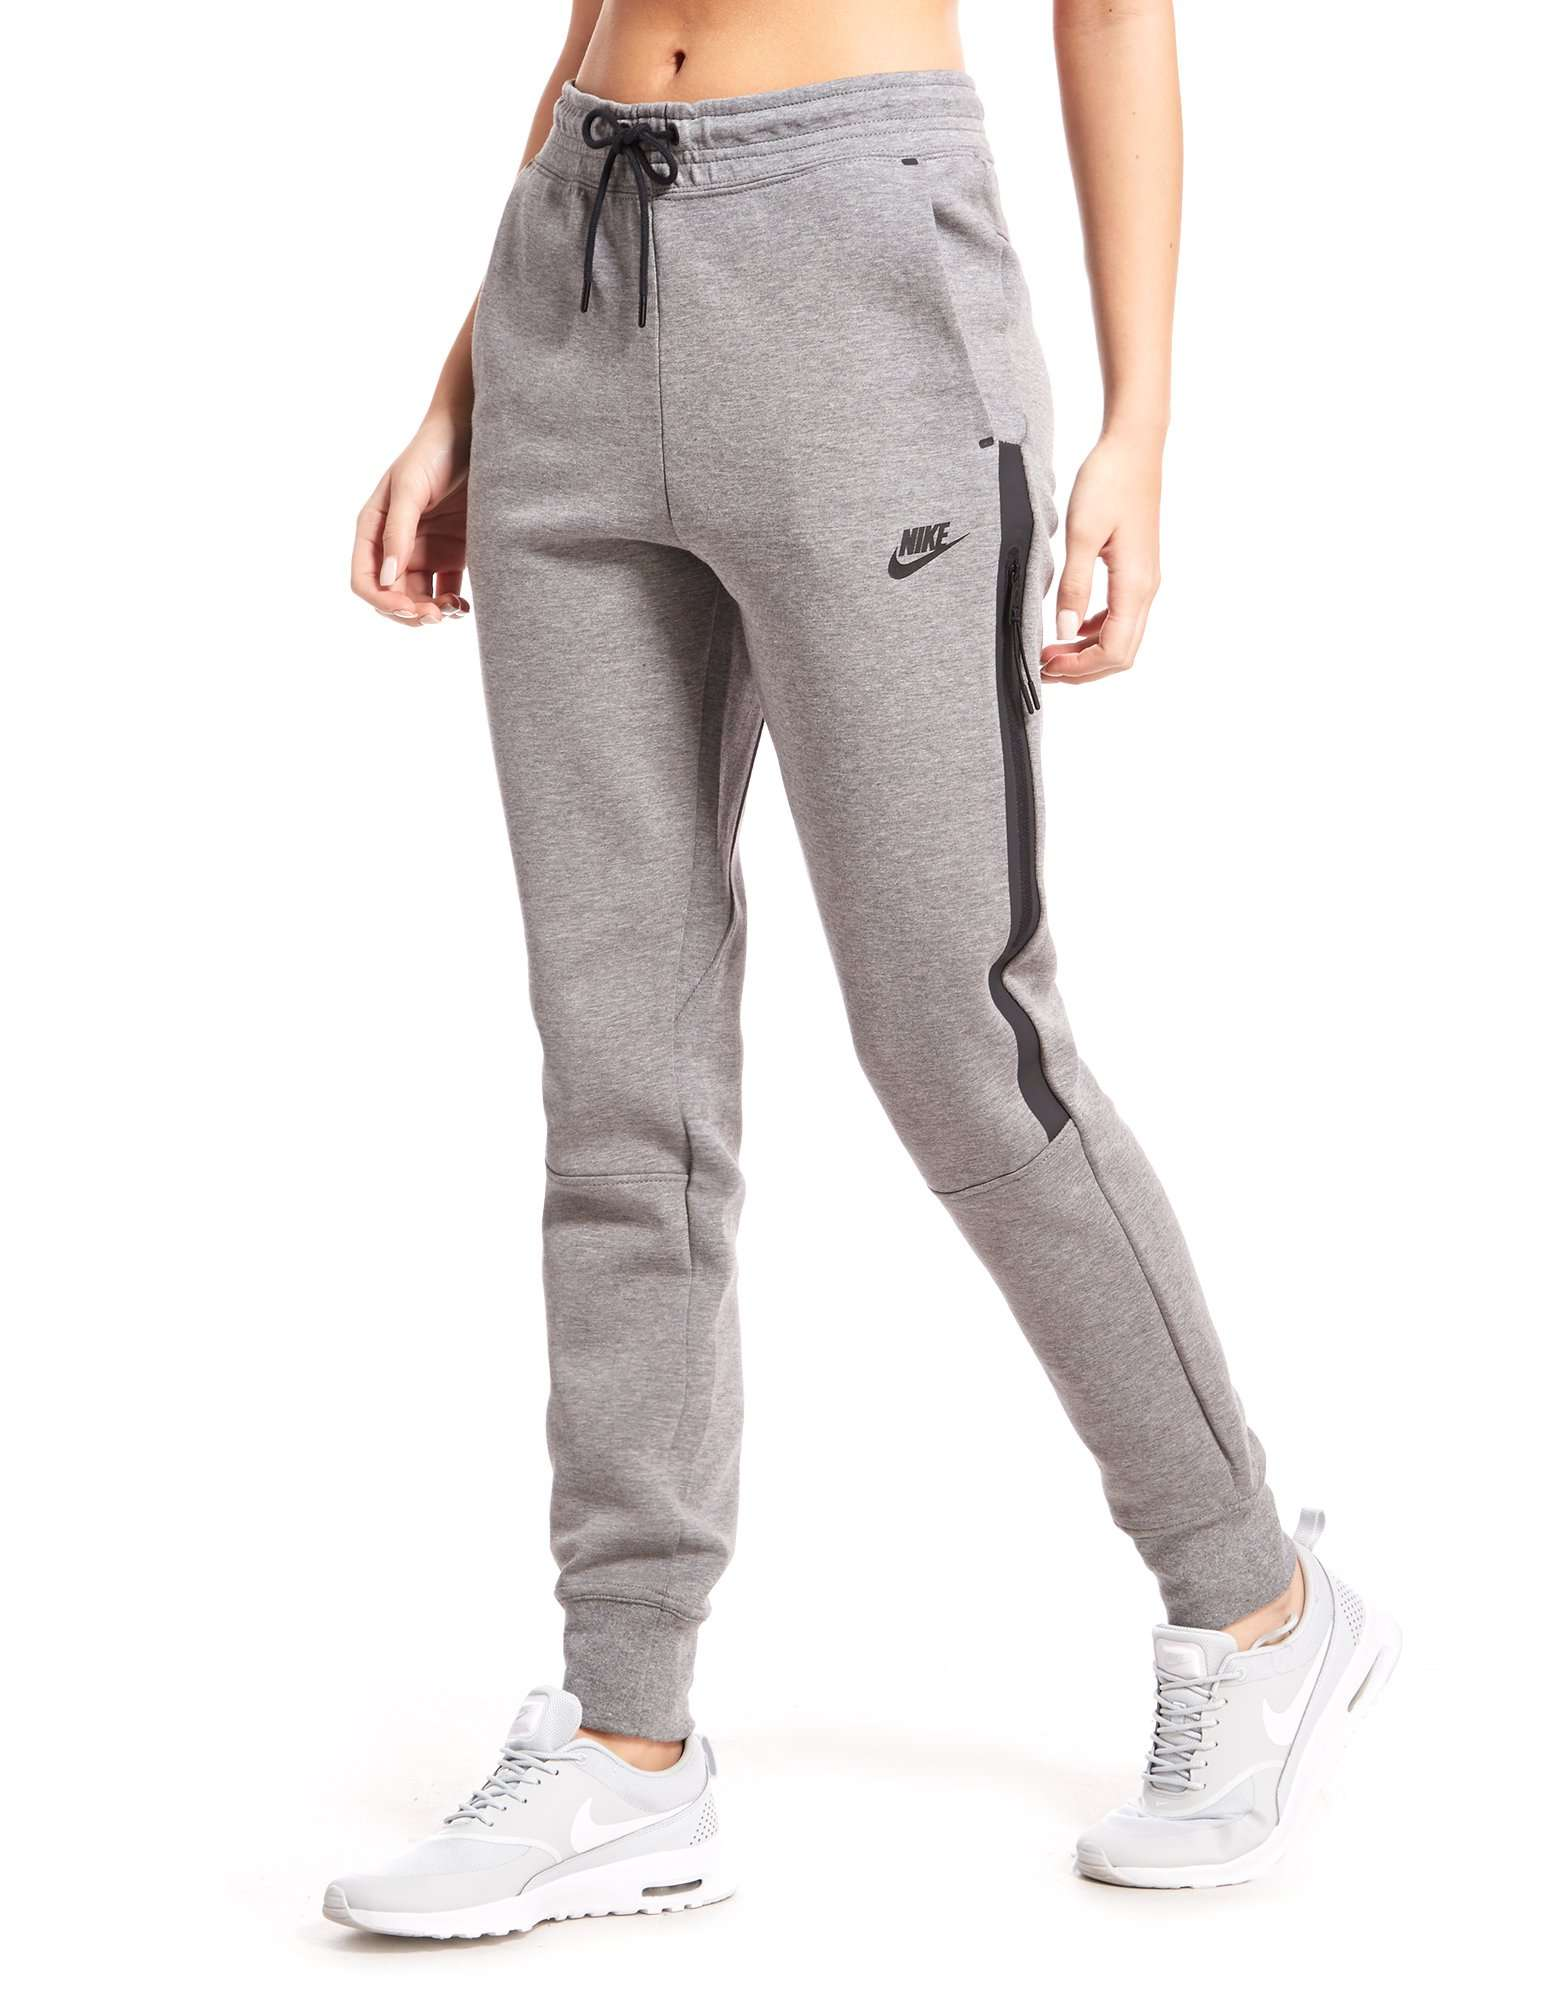 Model Nike Tech Fleece Women S Pants Sweatpants Get A Modern Feminine